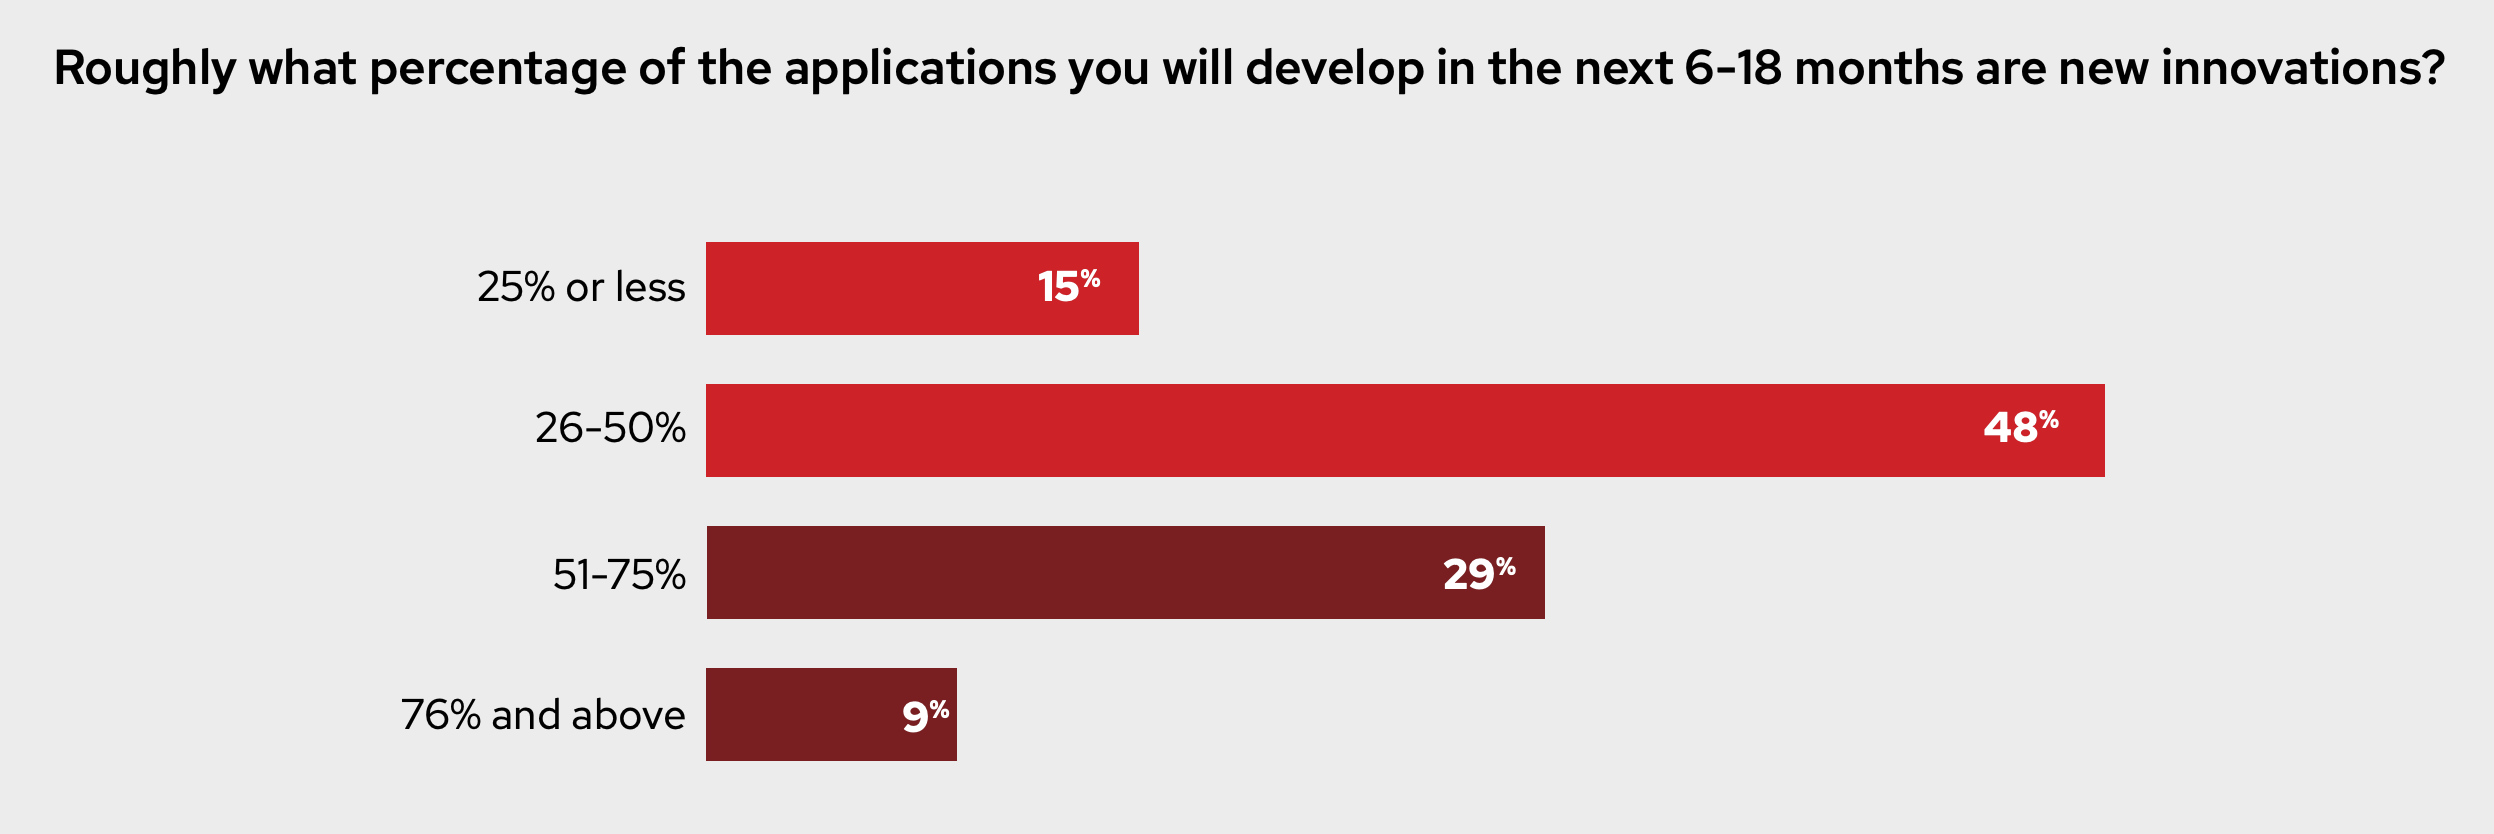 Roughly what percentage of the applications you will develop in the next 6-18 months are new innovations? Figure 6: Percentage of applications that are new innovations